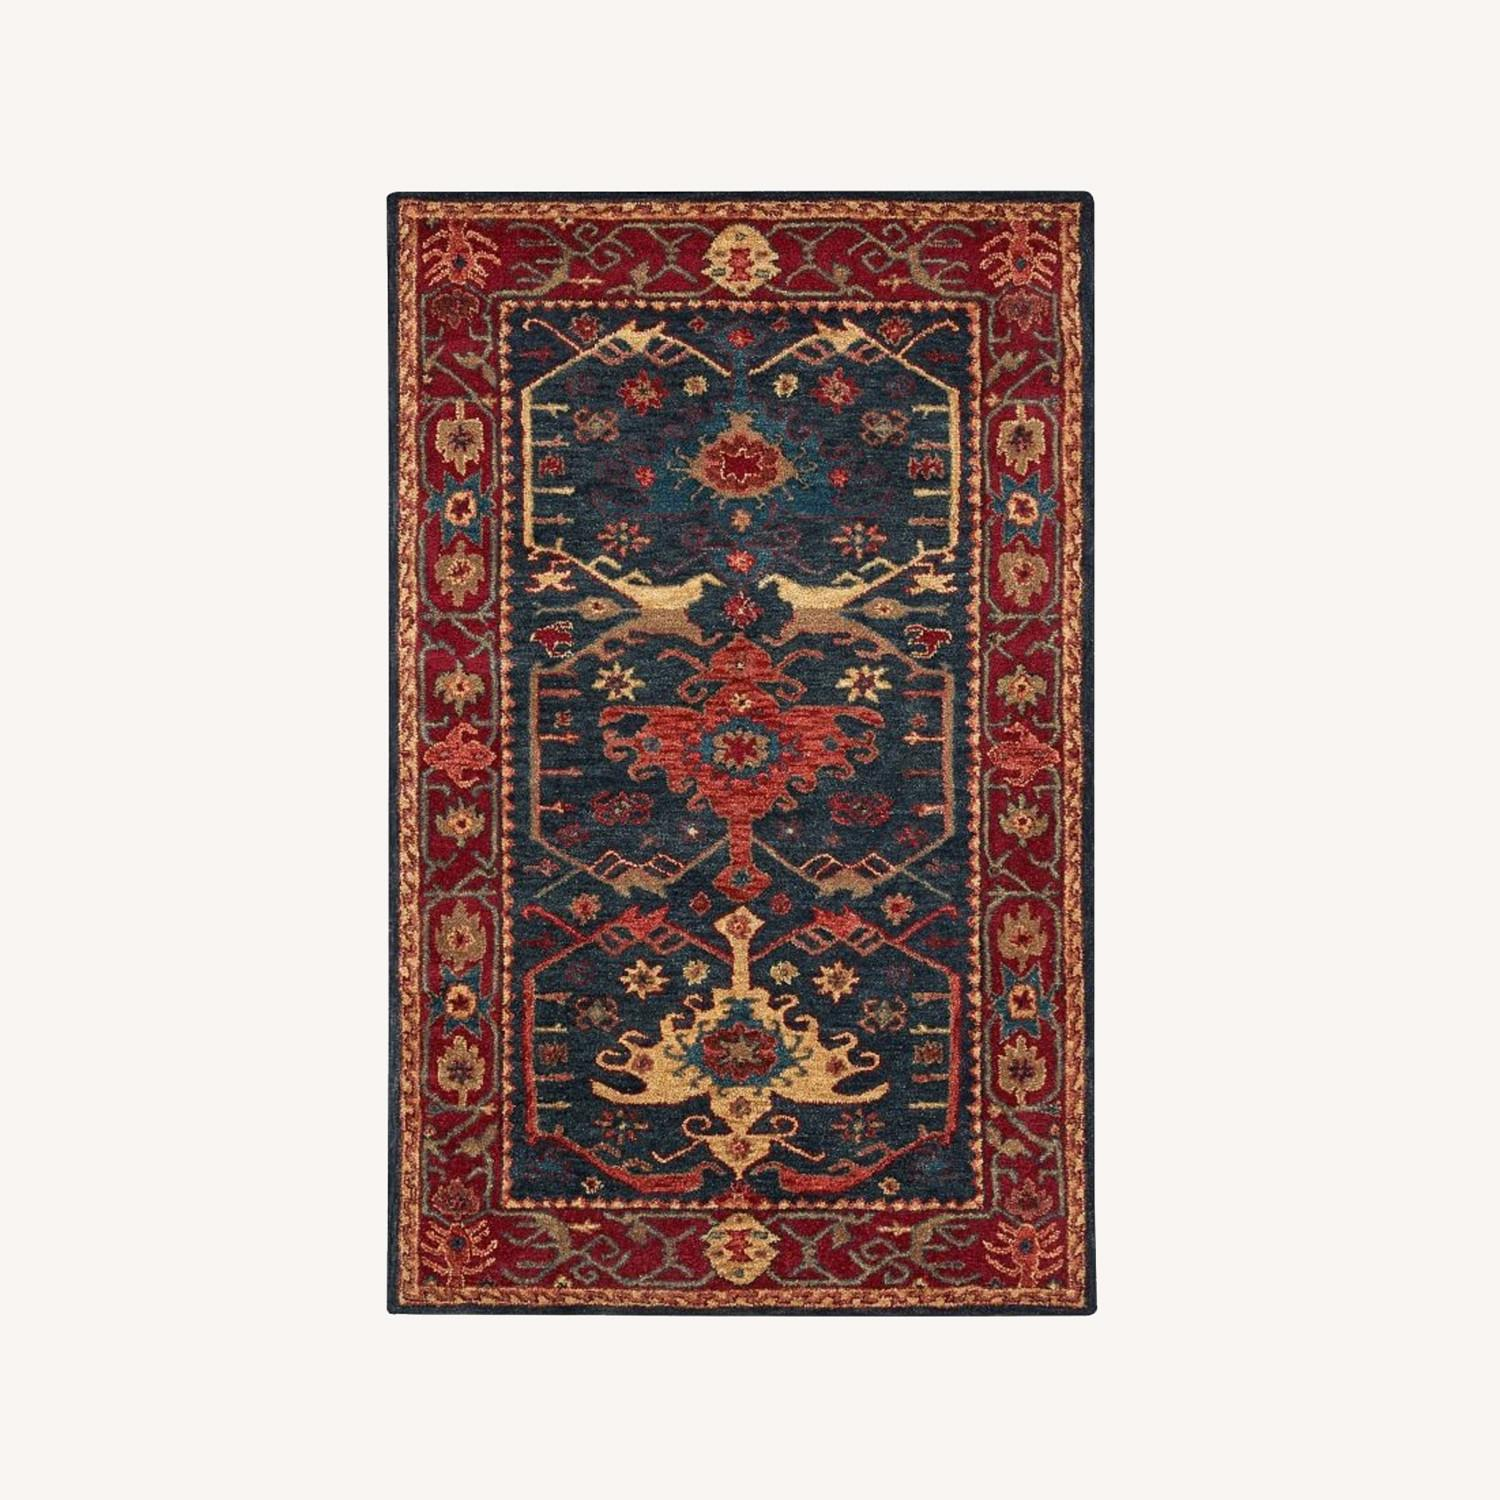 Pottery Barn Channing Persian-Style Hand Rug - image-0